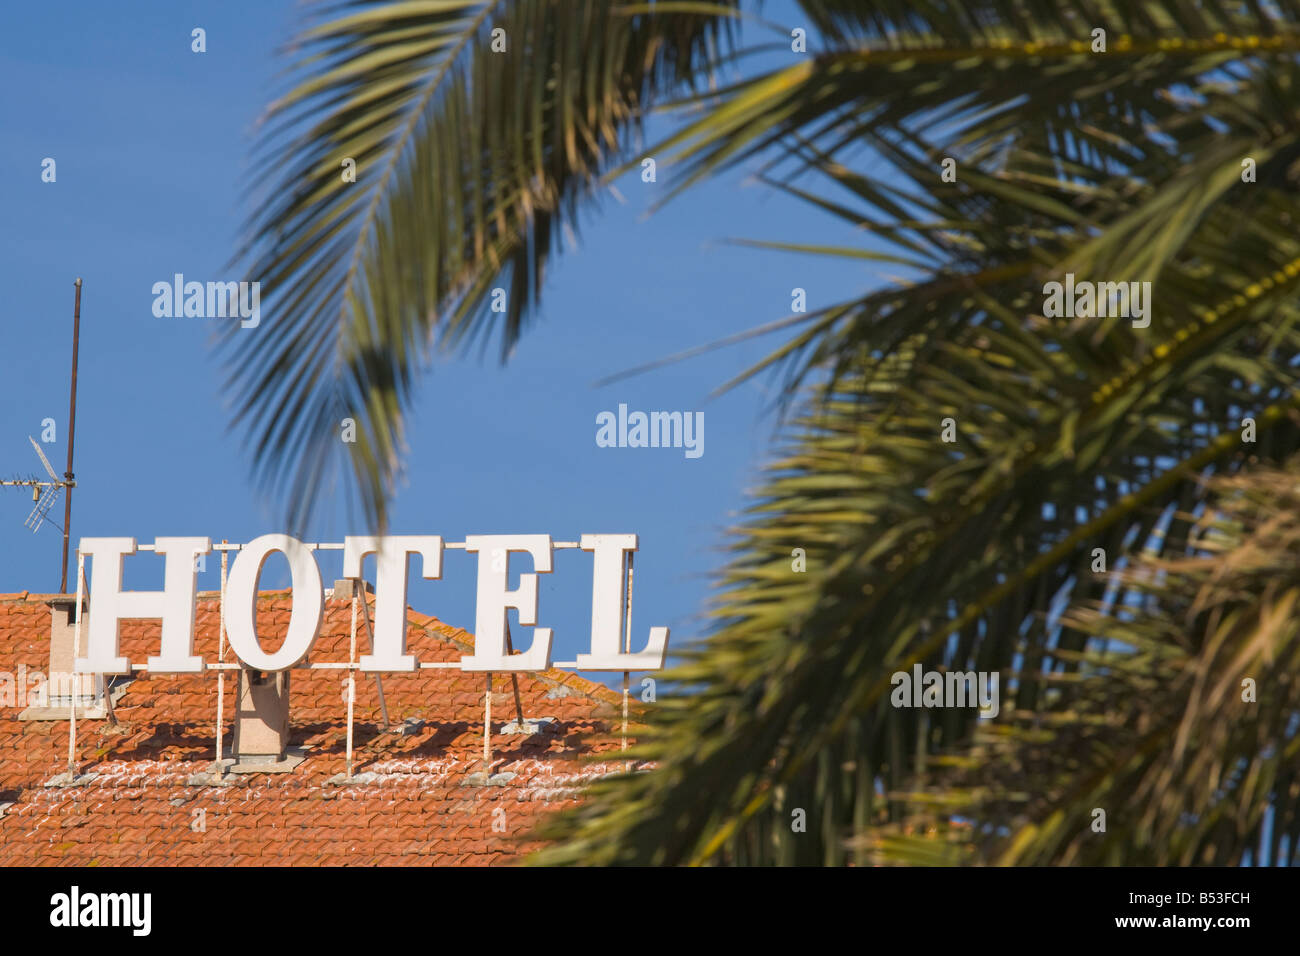 Hotel and palm trees in Sainte-Maxime at the Cote d'Azur / Provence - Stock Image